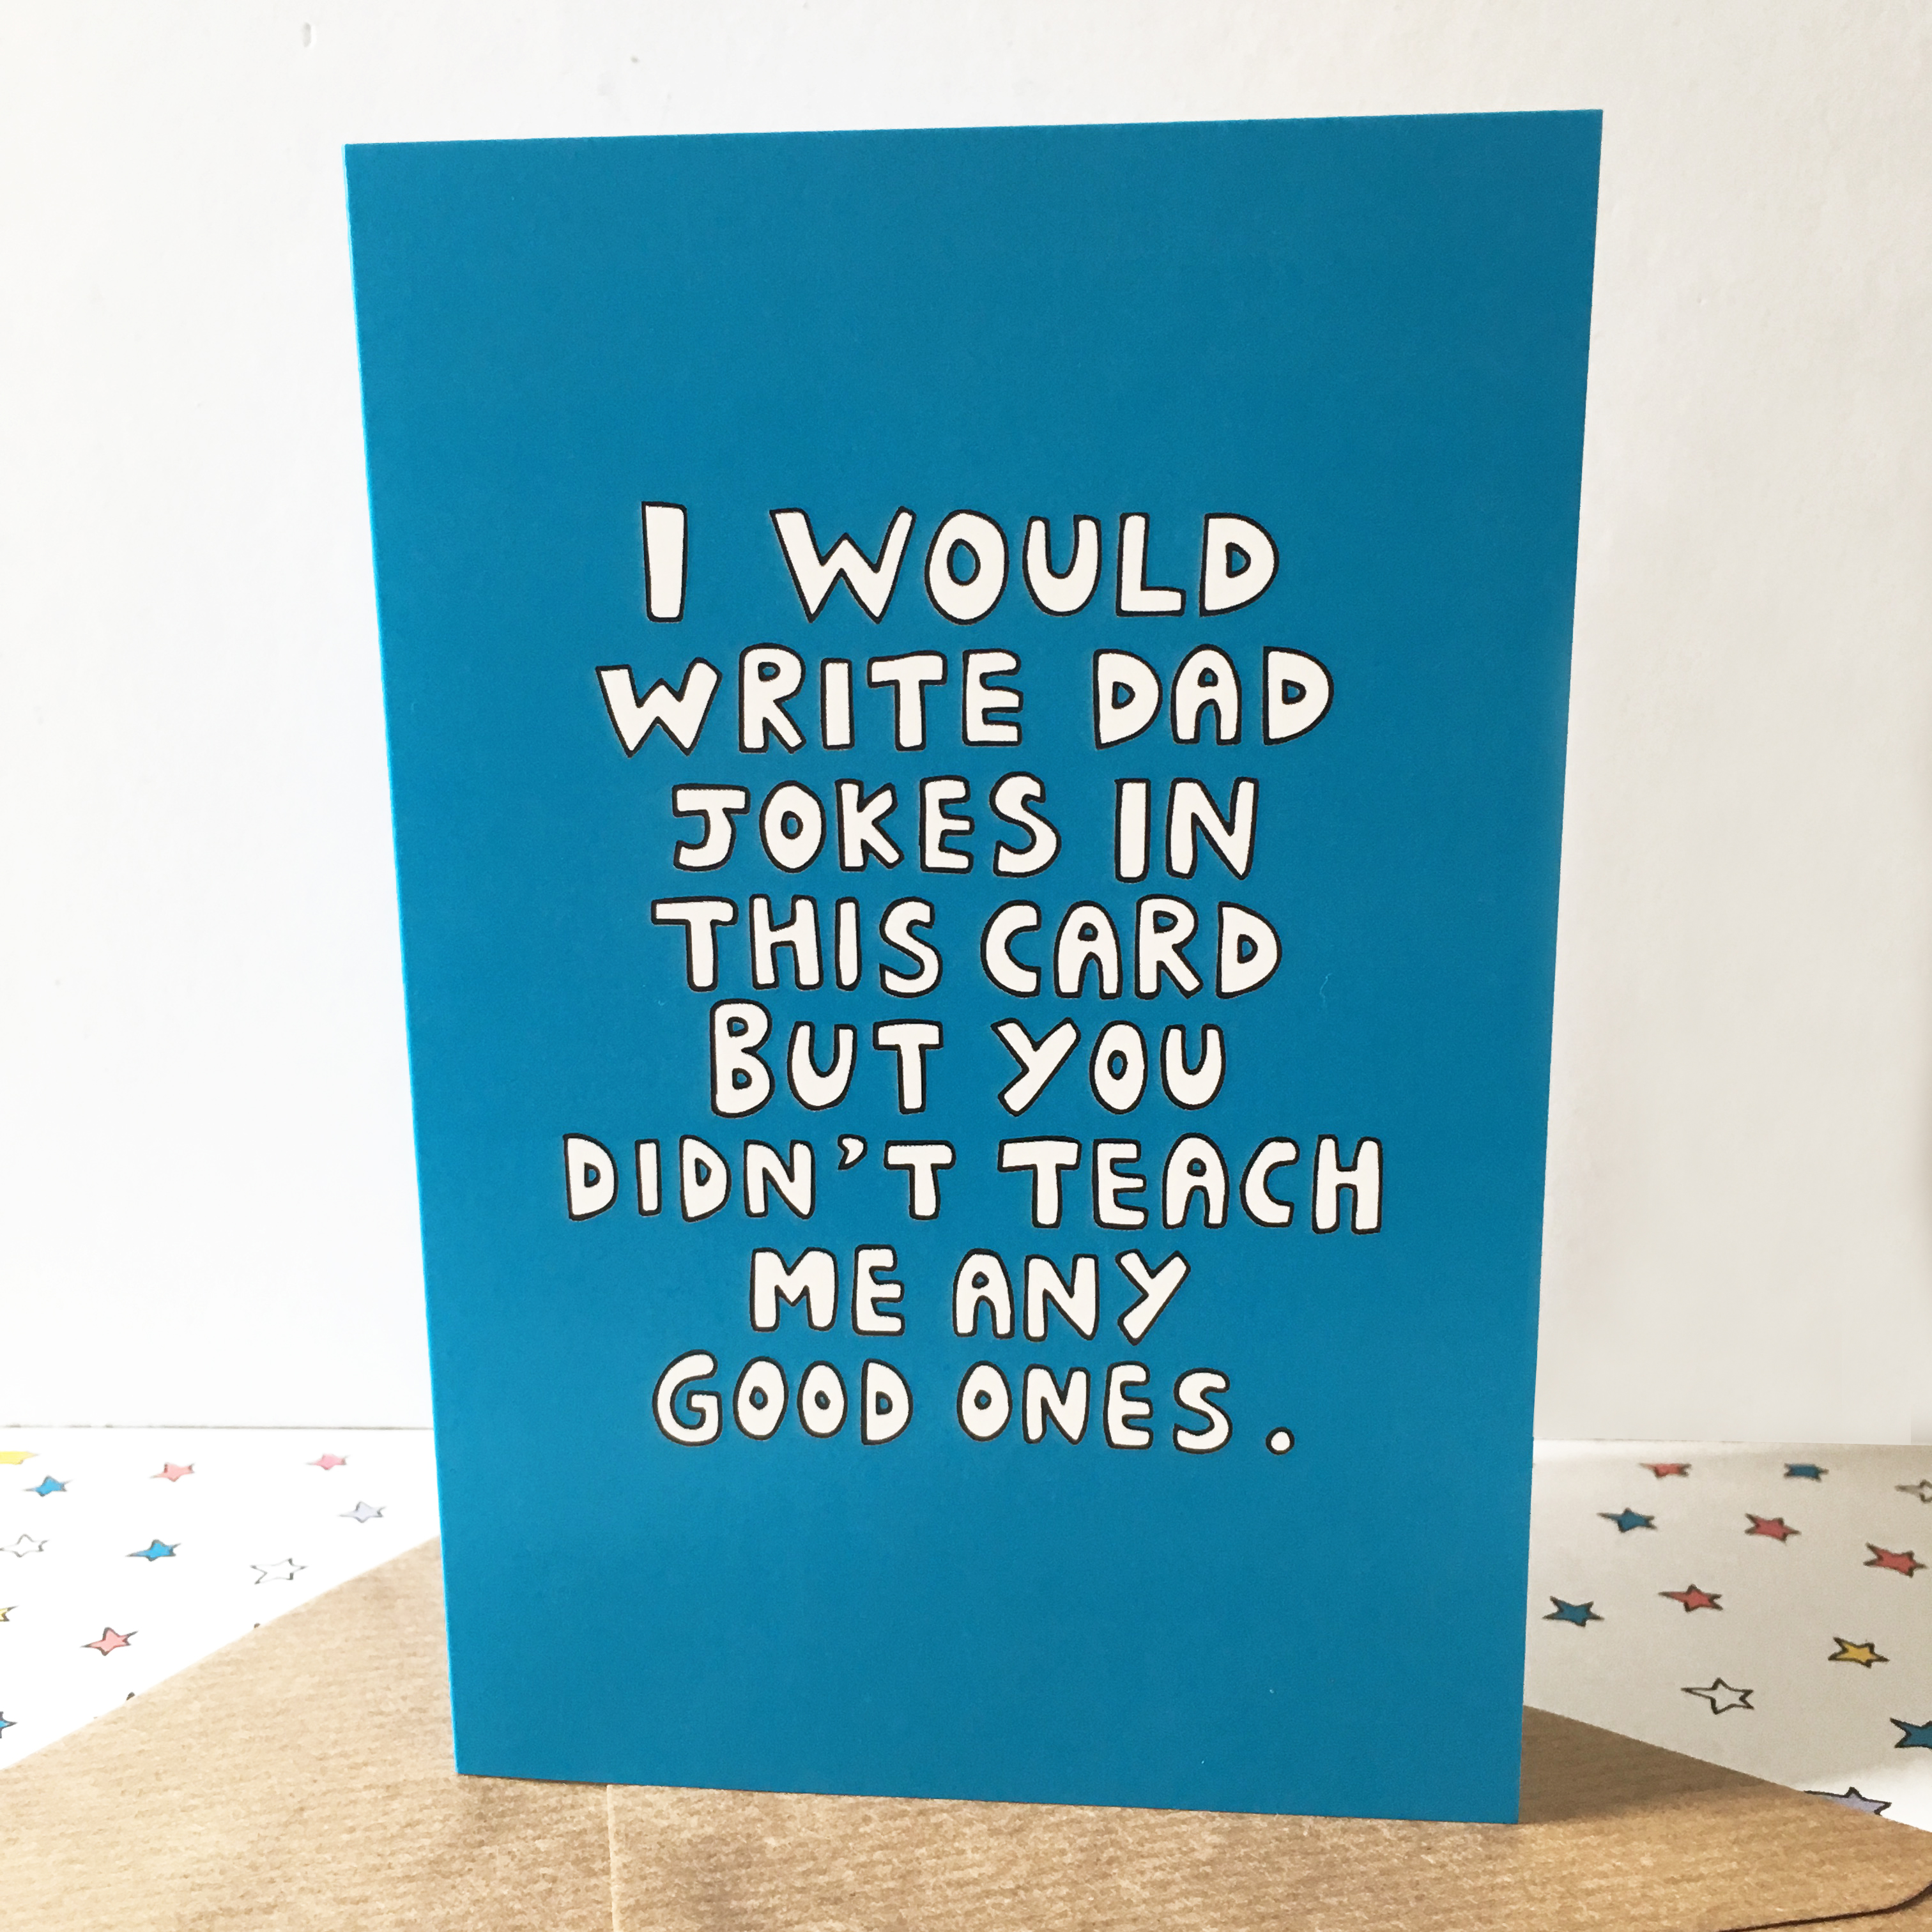 Funny Birthday Card For Dads Bad Dad Jokes Funny Card For: A New Funny Fathers Day Card